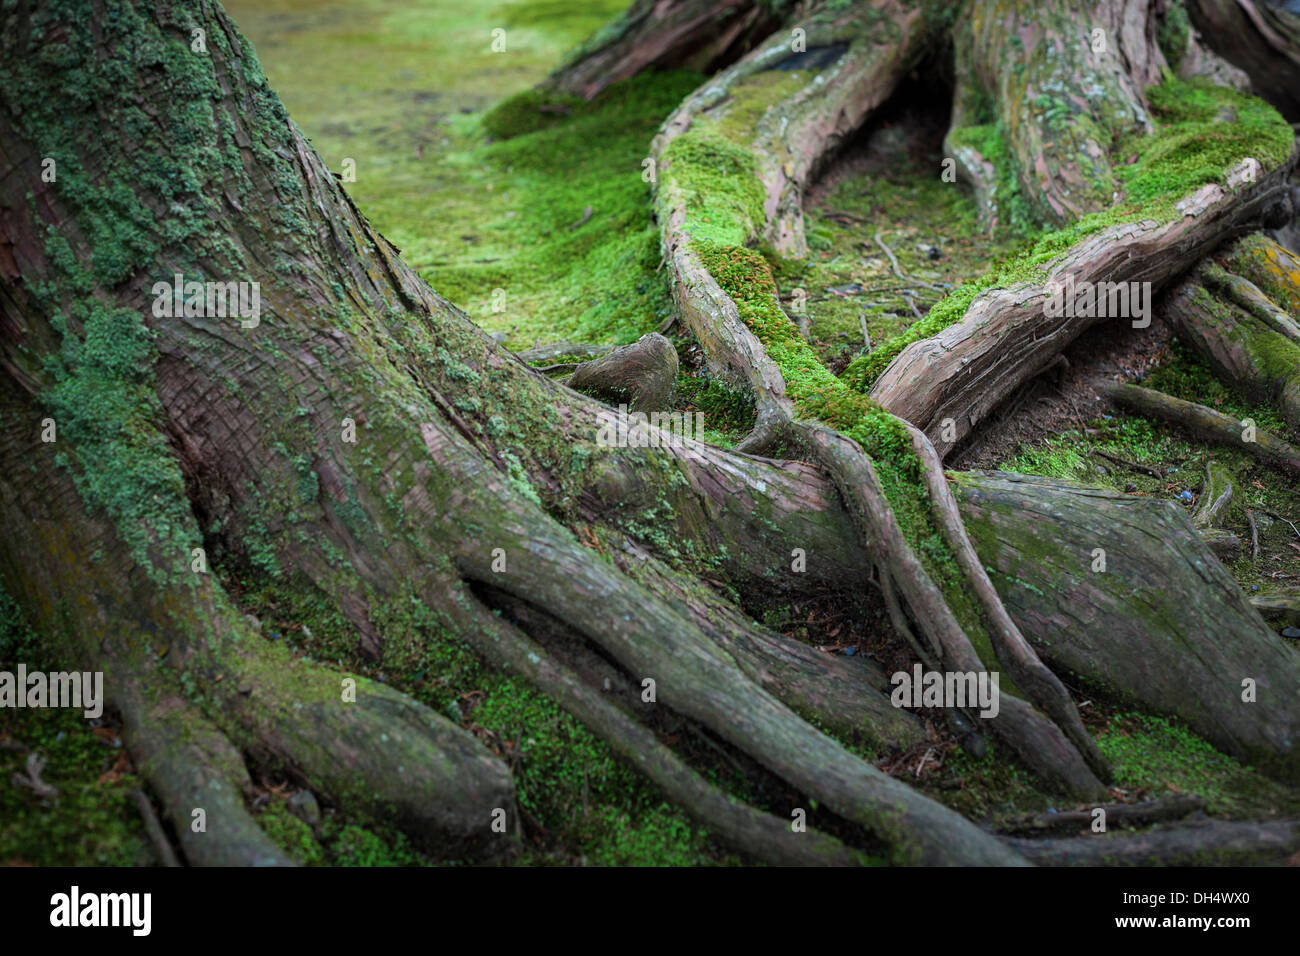 Roots of an old tree in a Japanese garden covered in moss - Stock Image